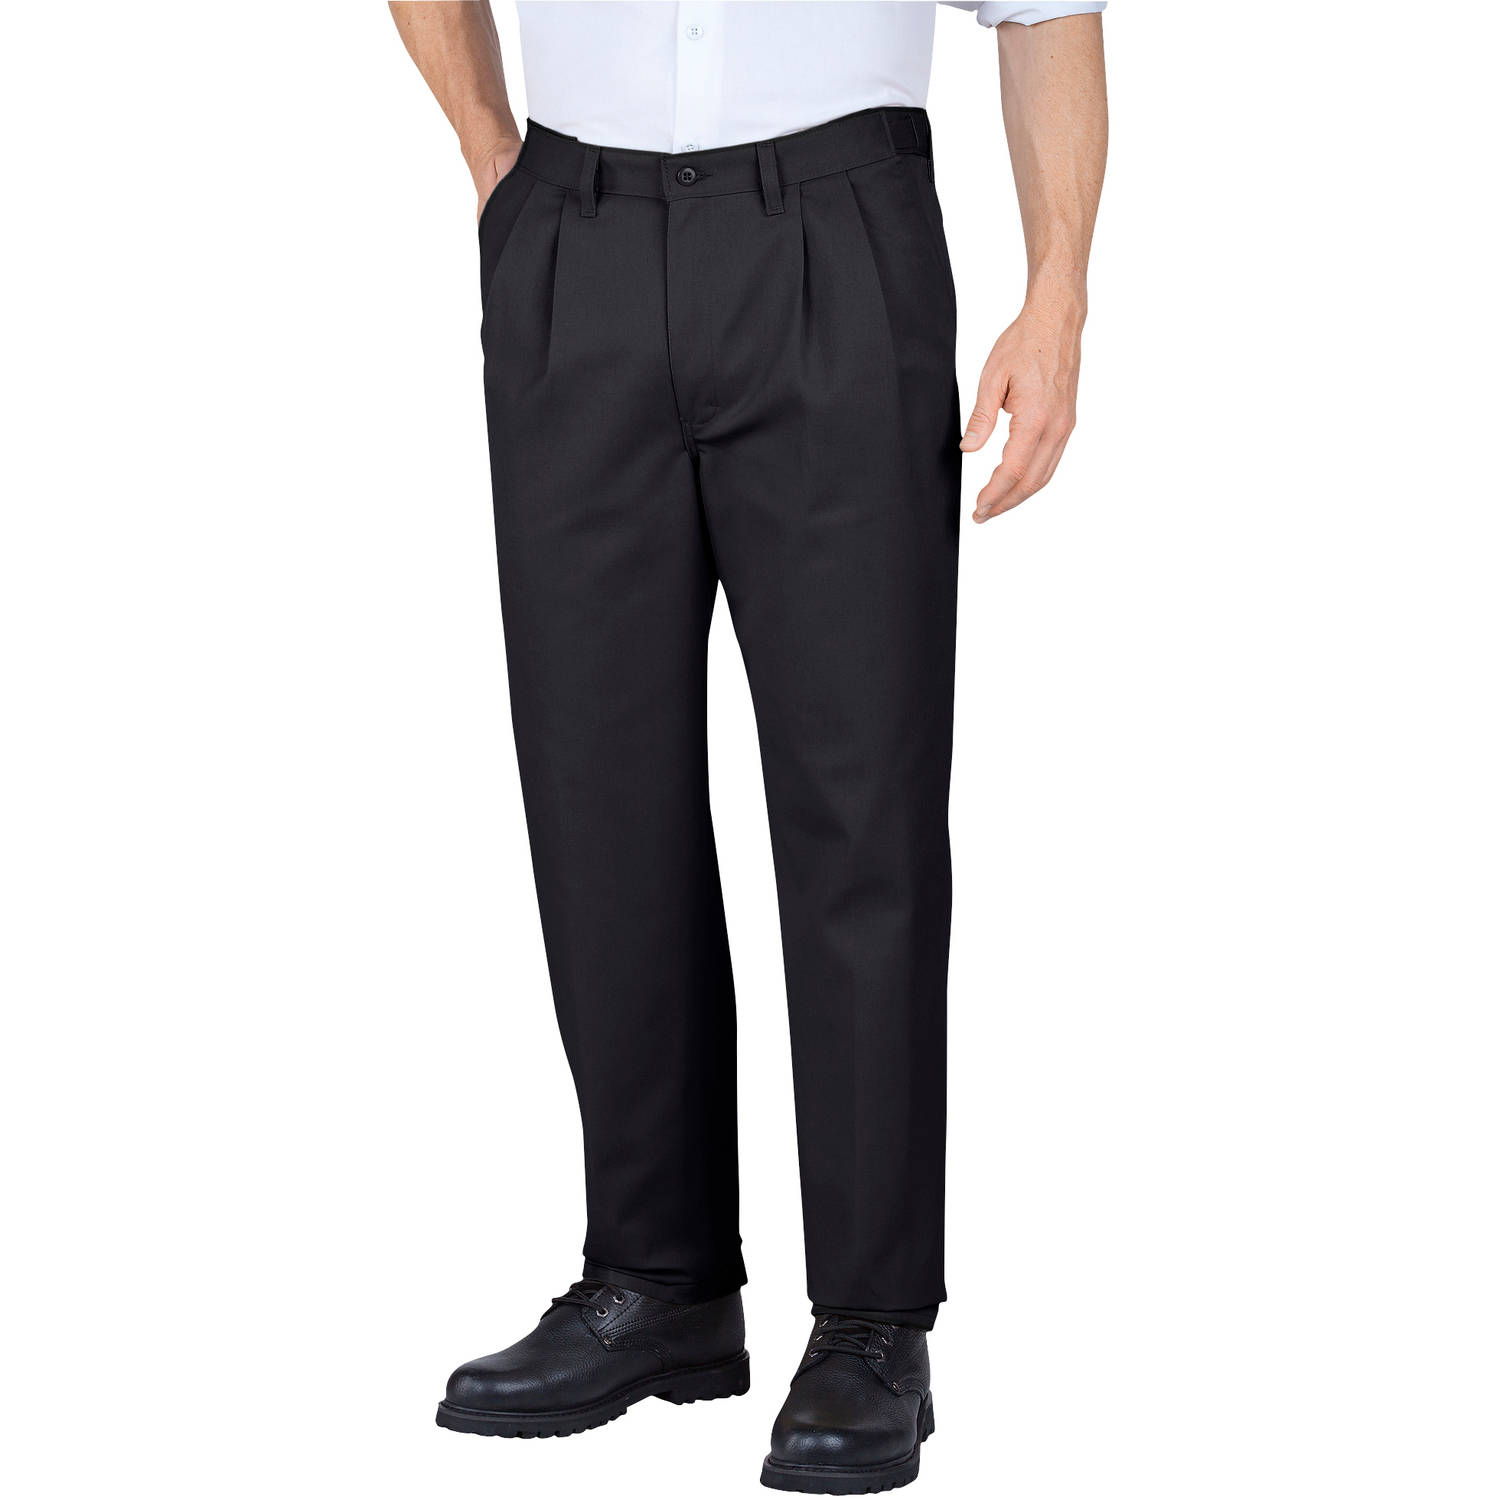 Shop Target for Dickies Pants you will love at great low prices. Free shipping & returns plus same-day pick-up in store.